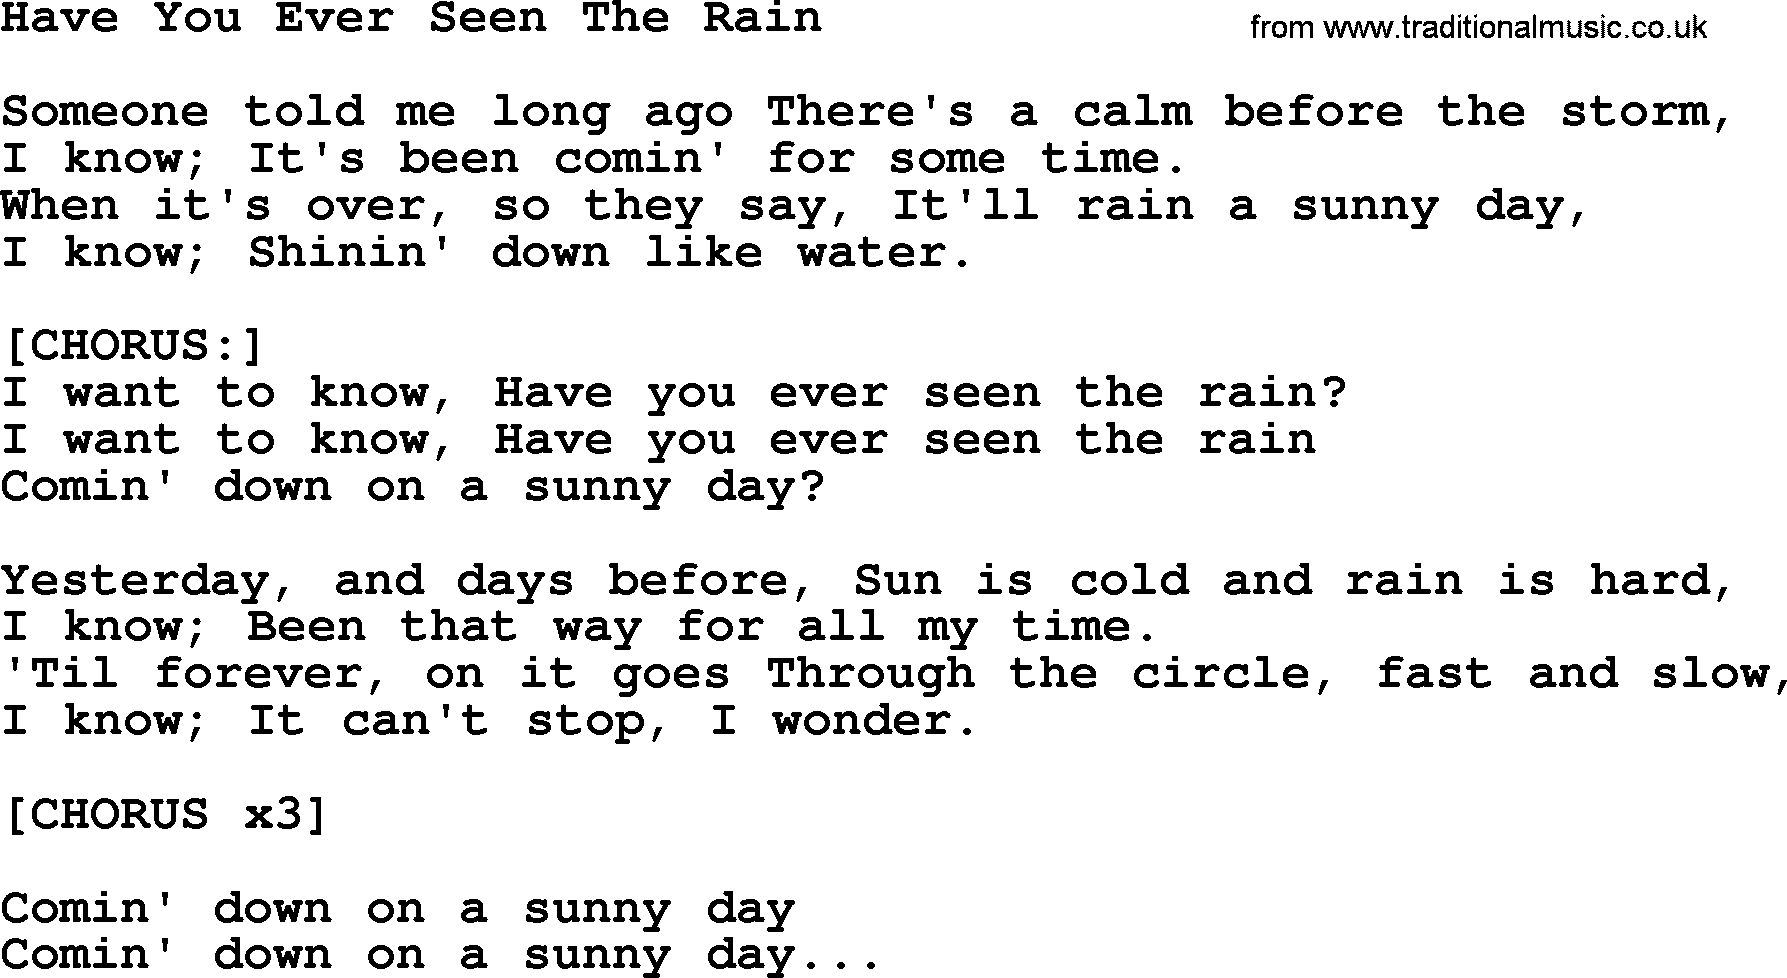 Have You Ever Seen The Rain Chords Willie Nelson Song Have You Ever Seen The Rain Lyrics